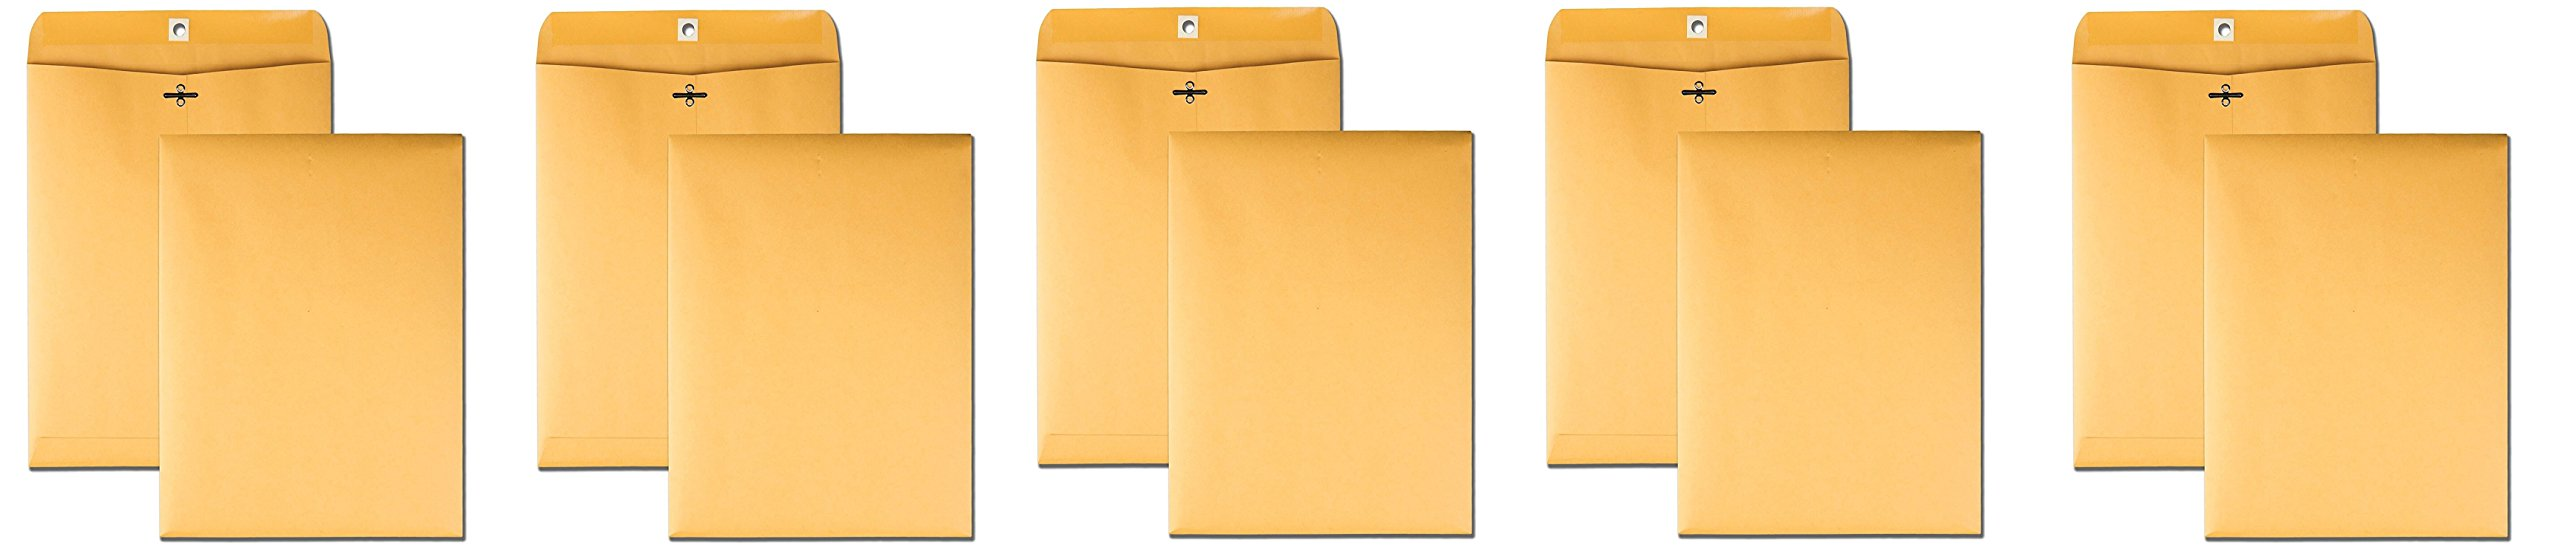 Quality Park Clasp 9 x 12 Inch 28lb Brown Kraft Envelopes 100 Count (37890) (Pack of 500)